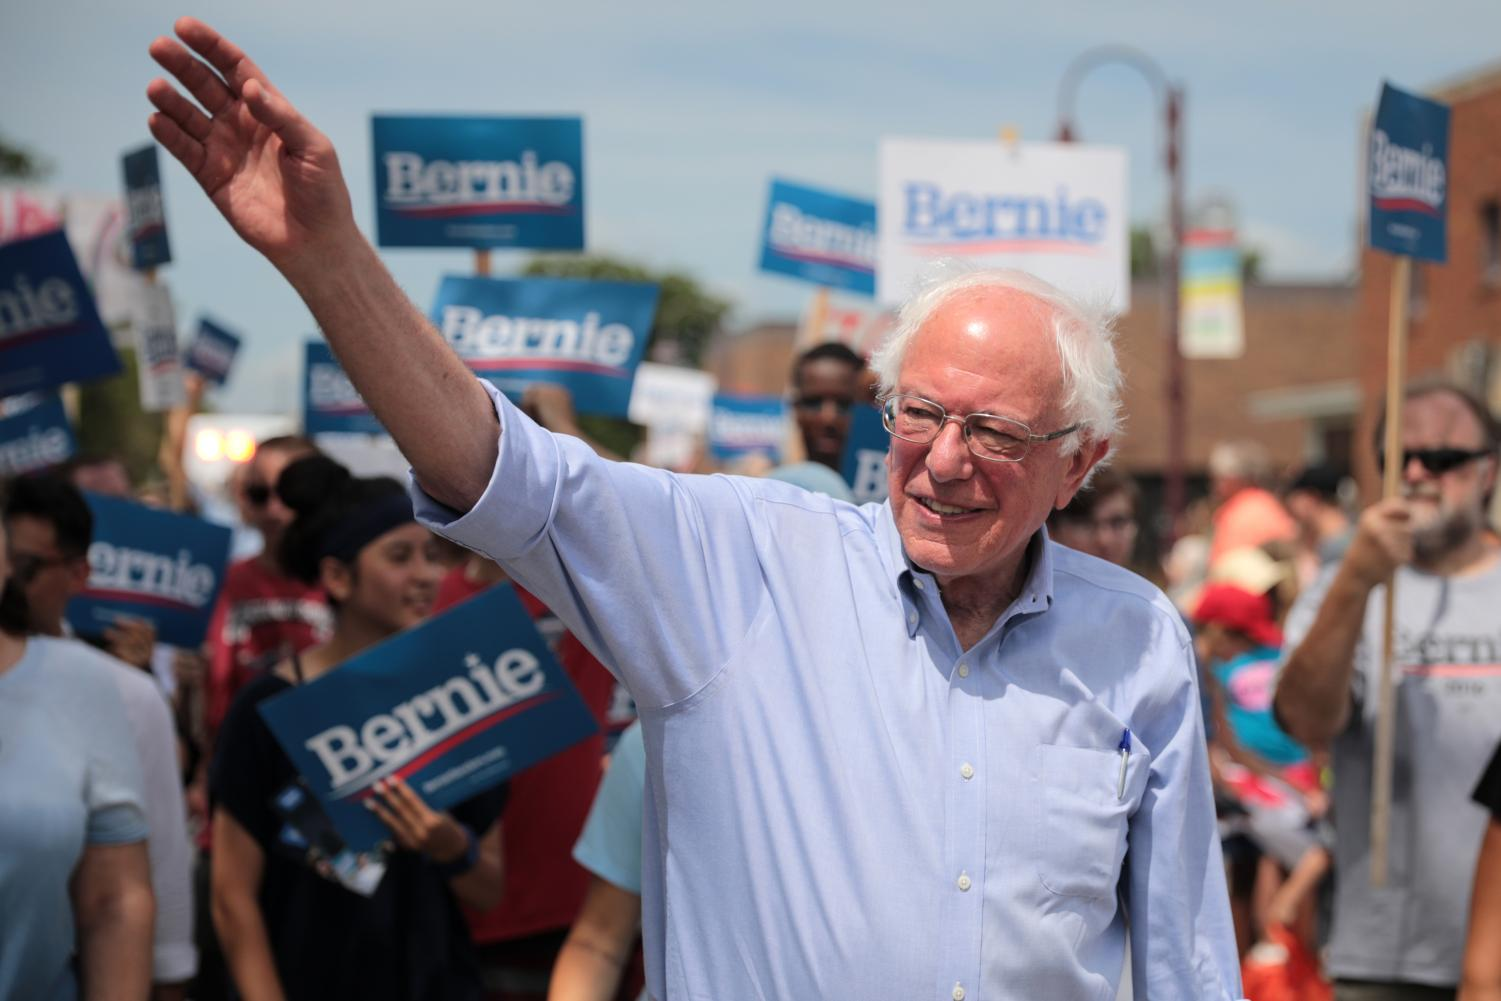 Bernie Sanders remains a strong candidate in the presidental race, despite negative media coverage.